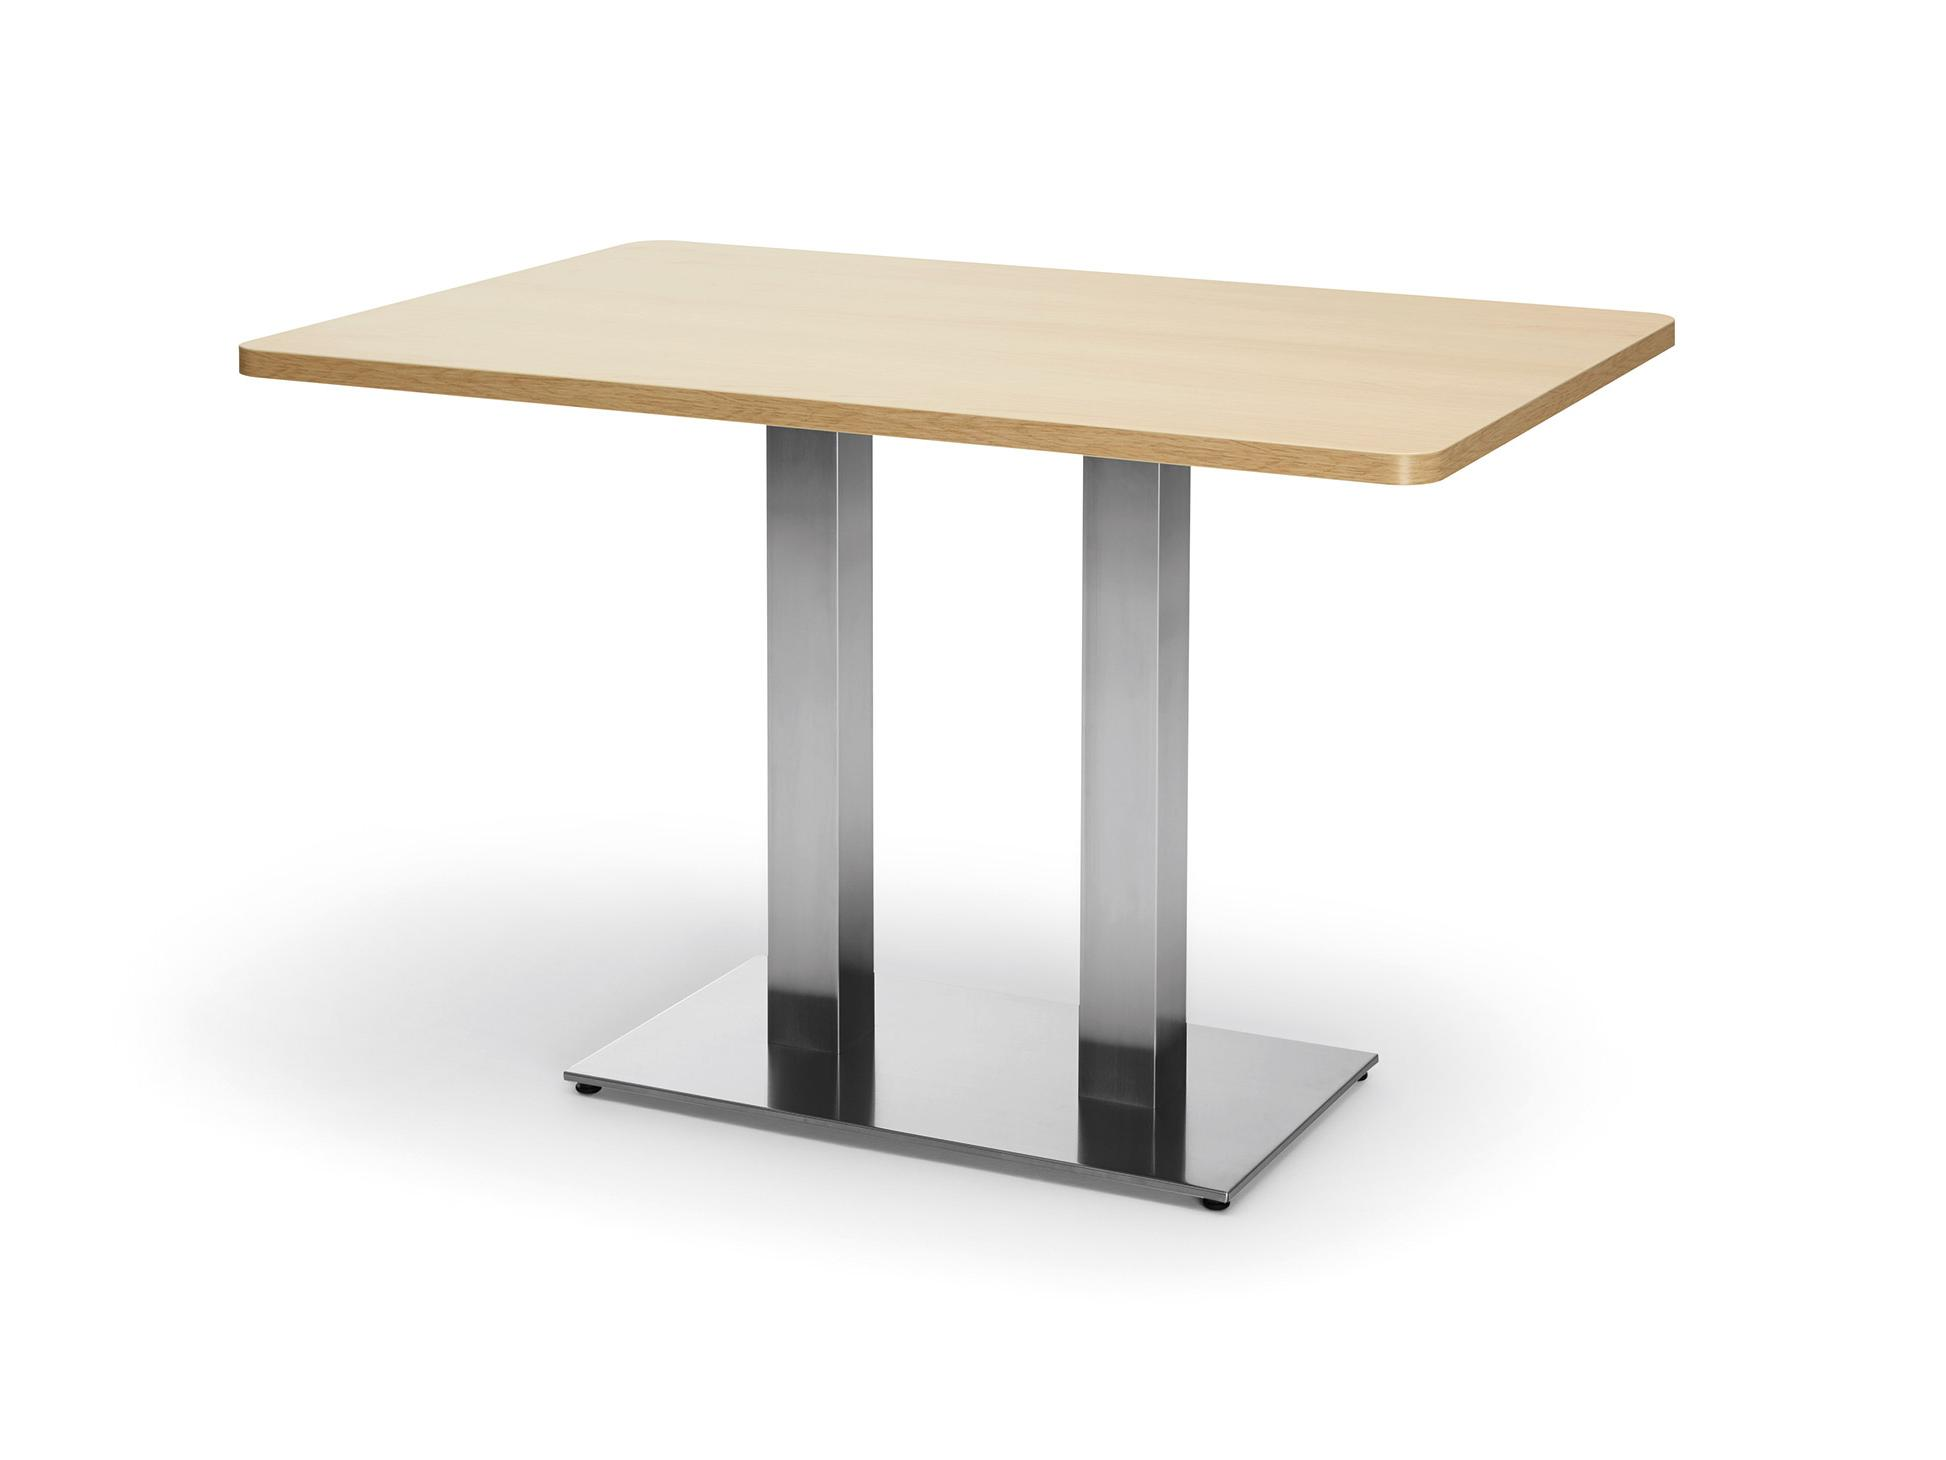 Column-leg table as a dining table with rectangular table top